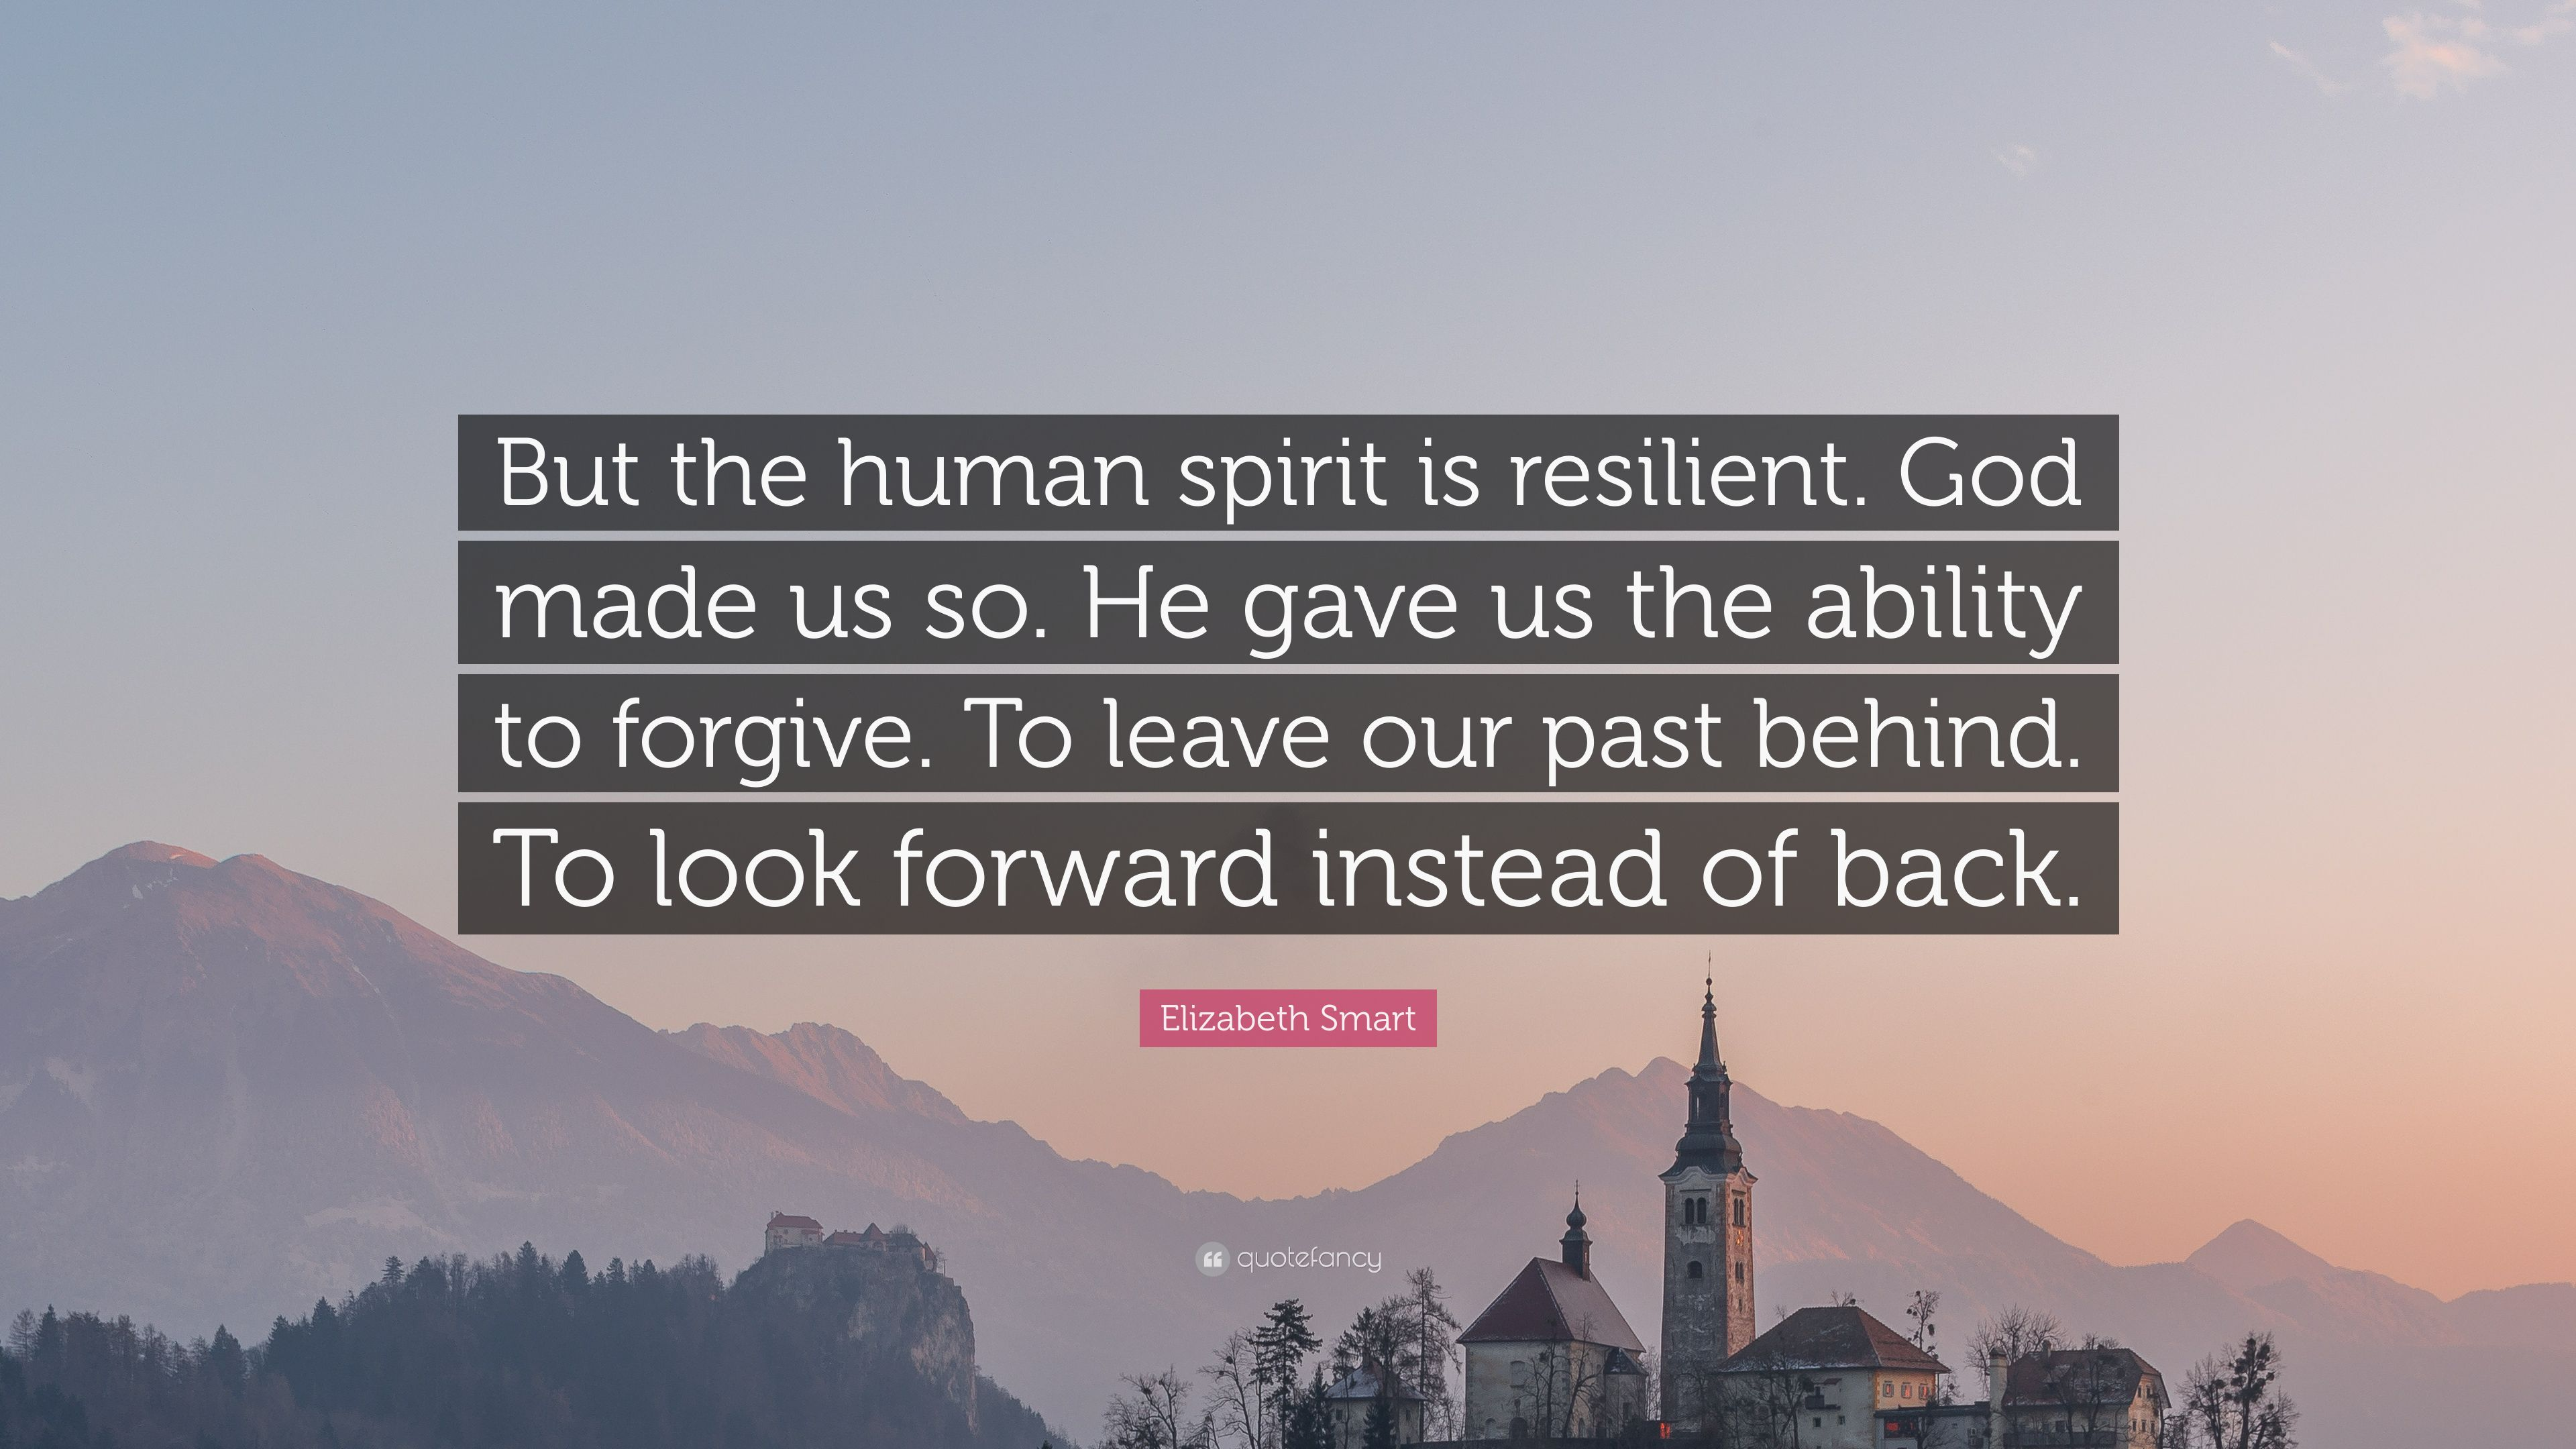 how the human spirit is resilient How do we come back to the resiliency of the human spirit i often think that the  most important step is realizing we need to we don't want to.